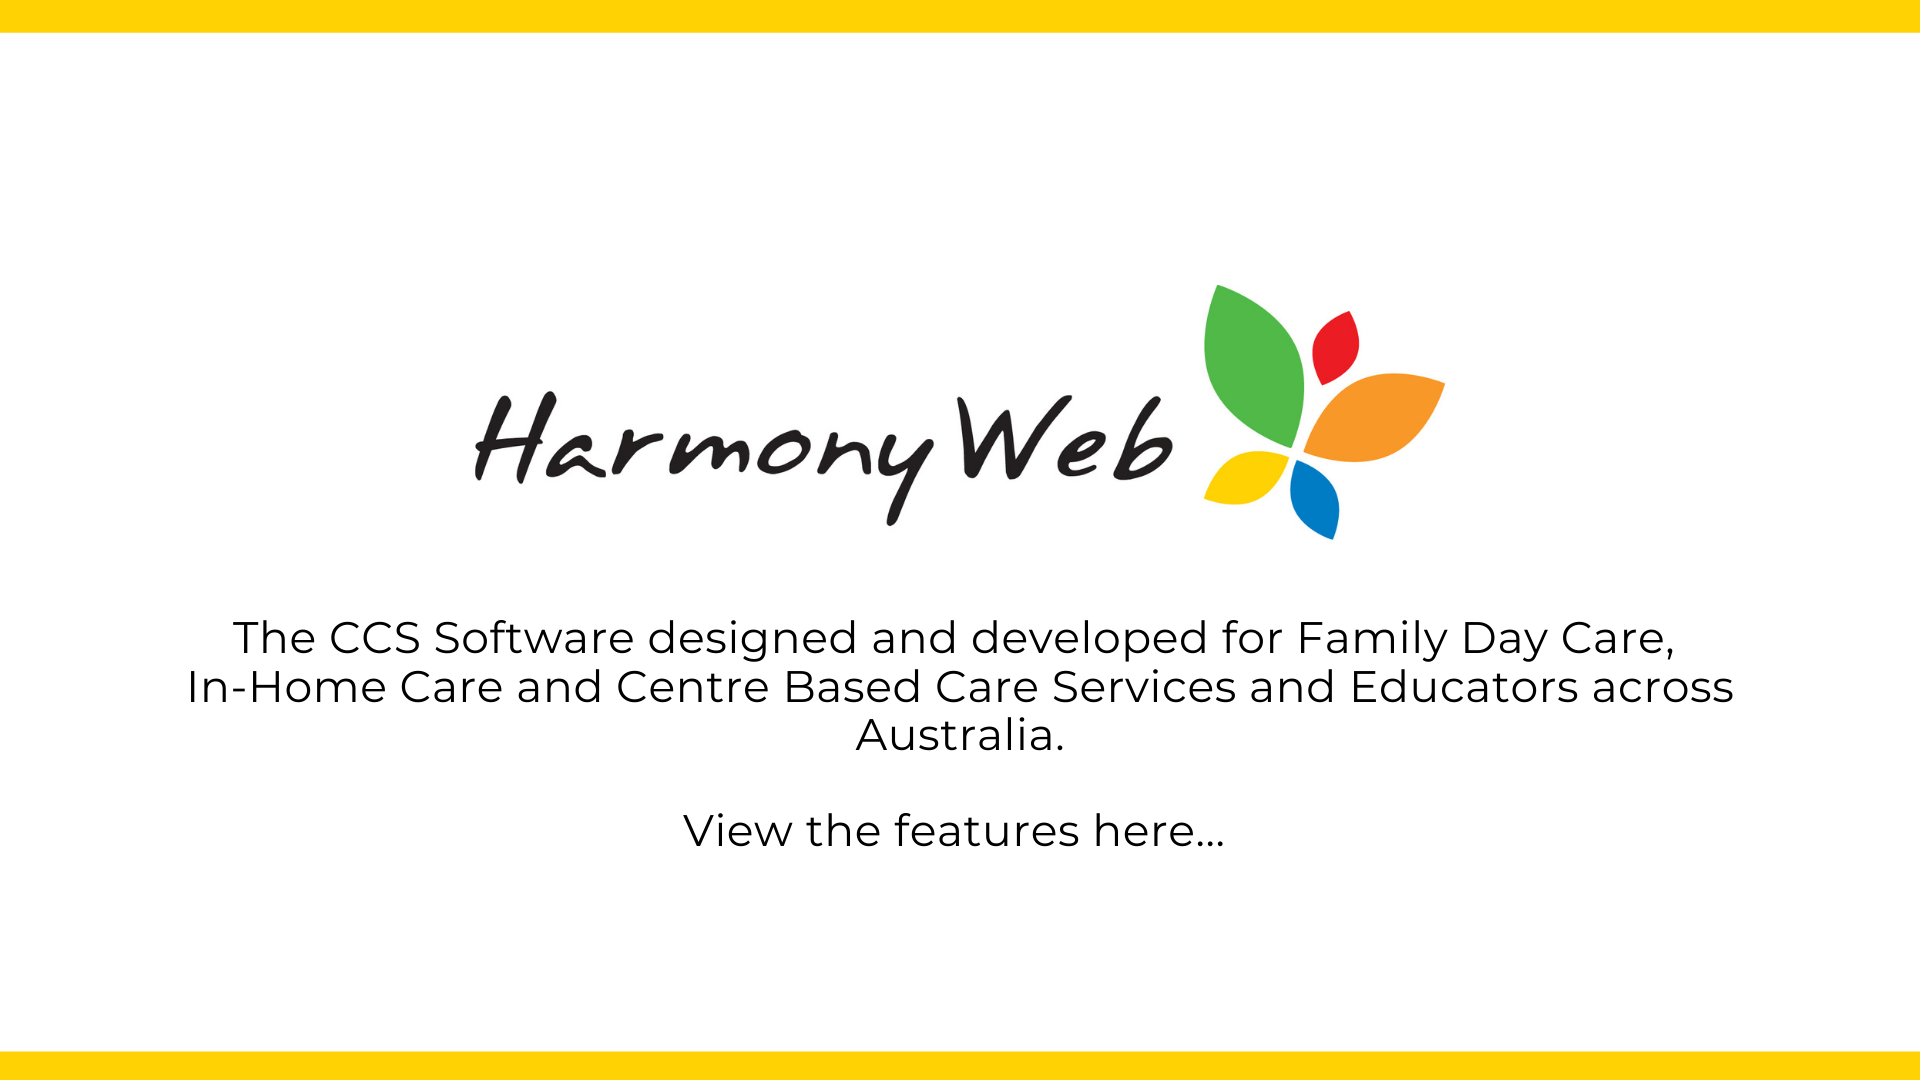 Harmony Web CCS Software has features to suit all size family day care and childcare services.